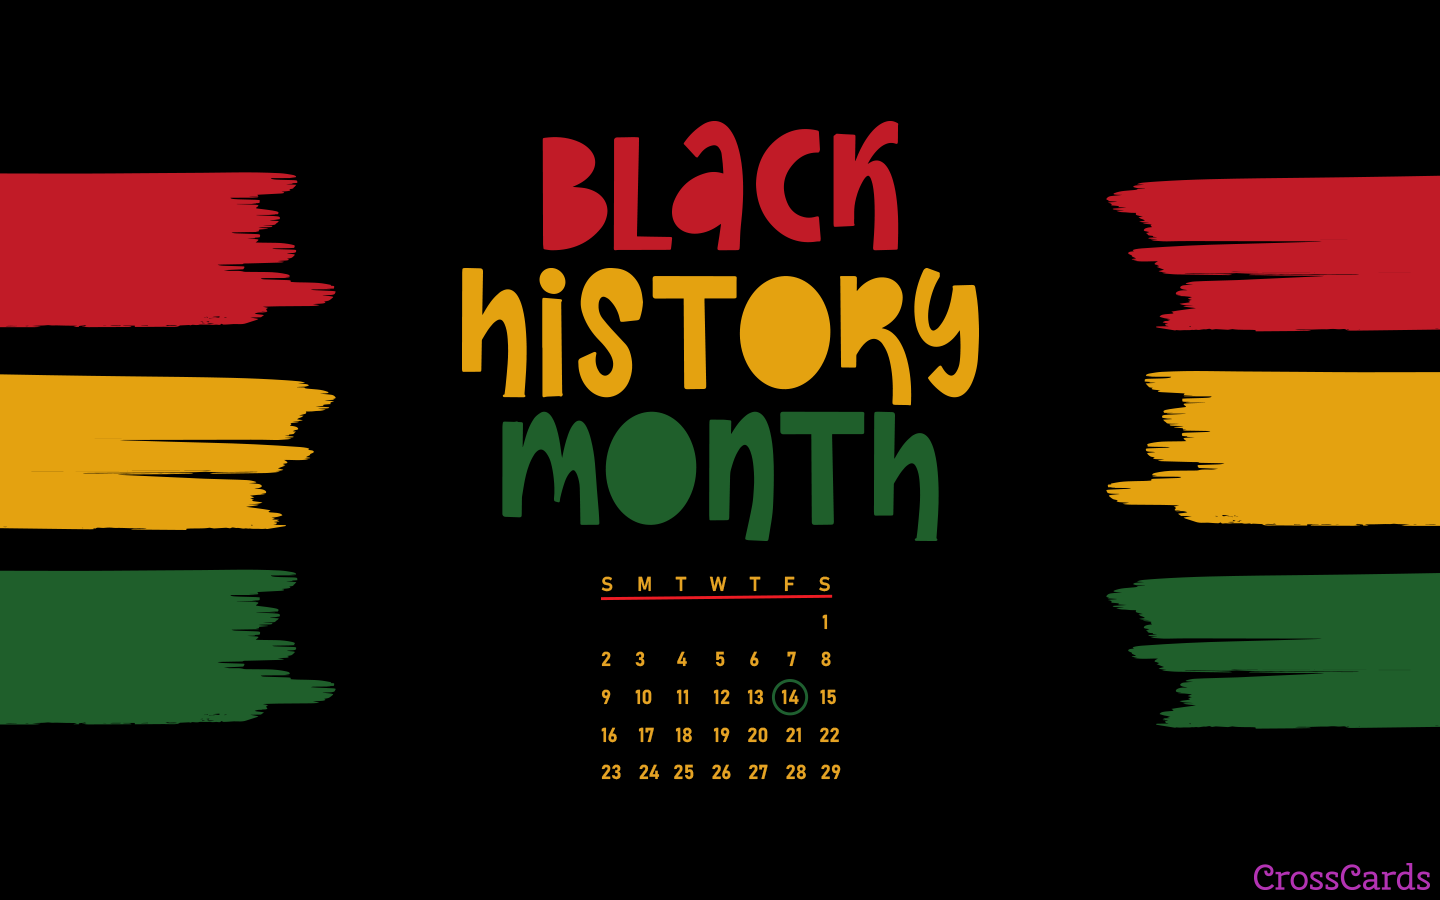 43 Black History Month 2020 Wallpapers On Wallpapersafari